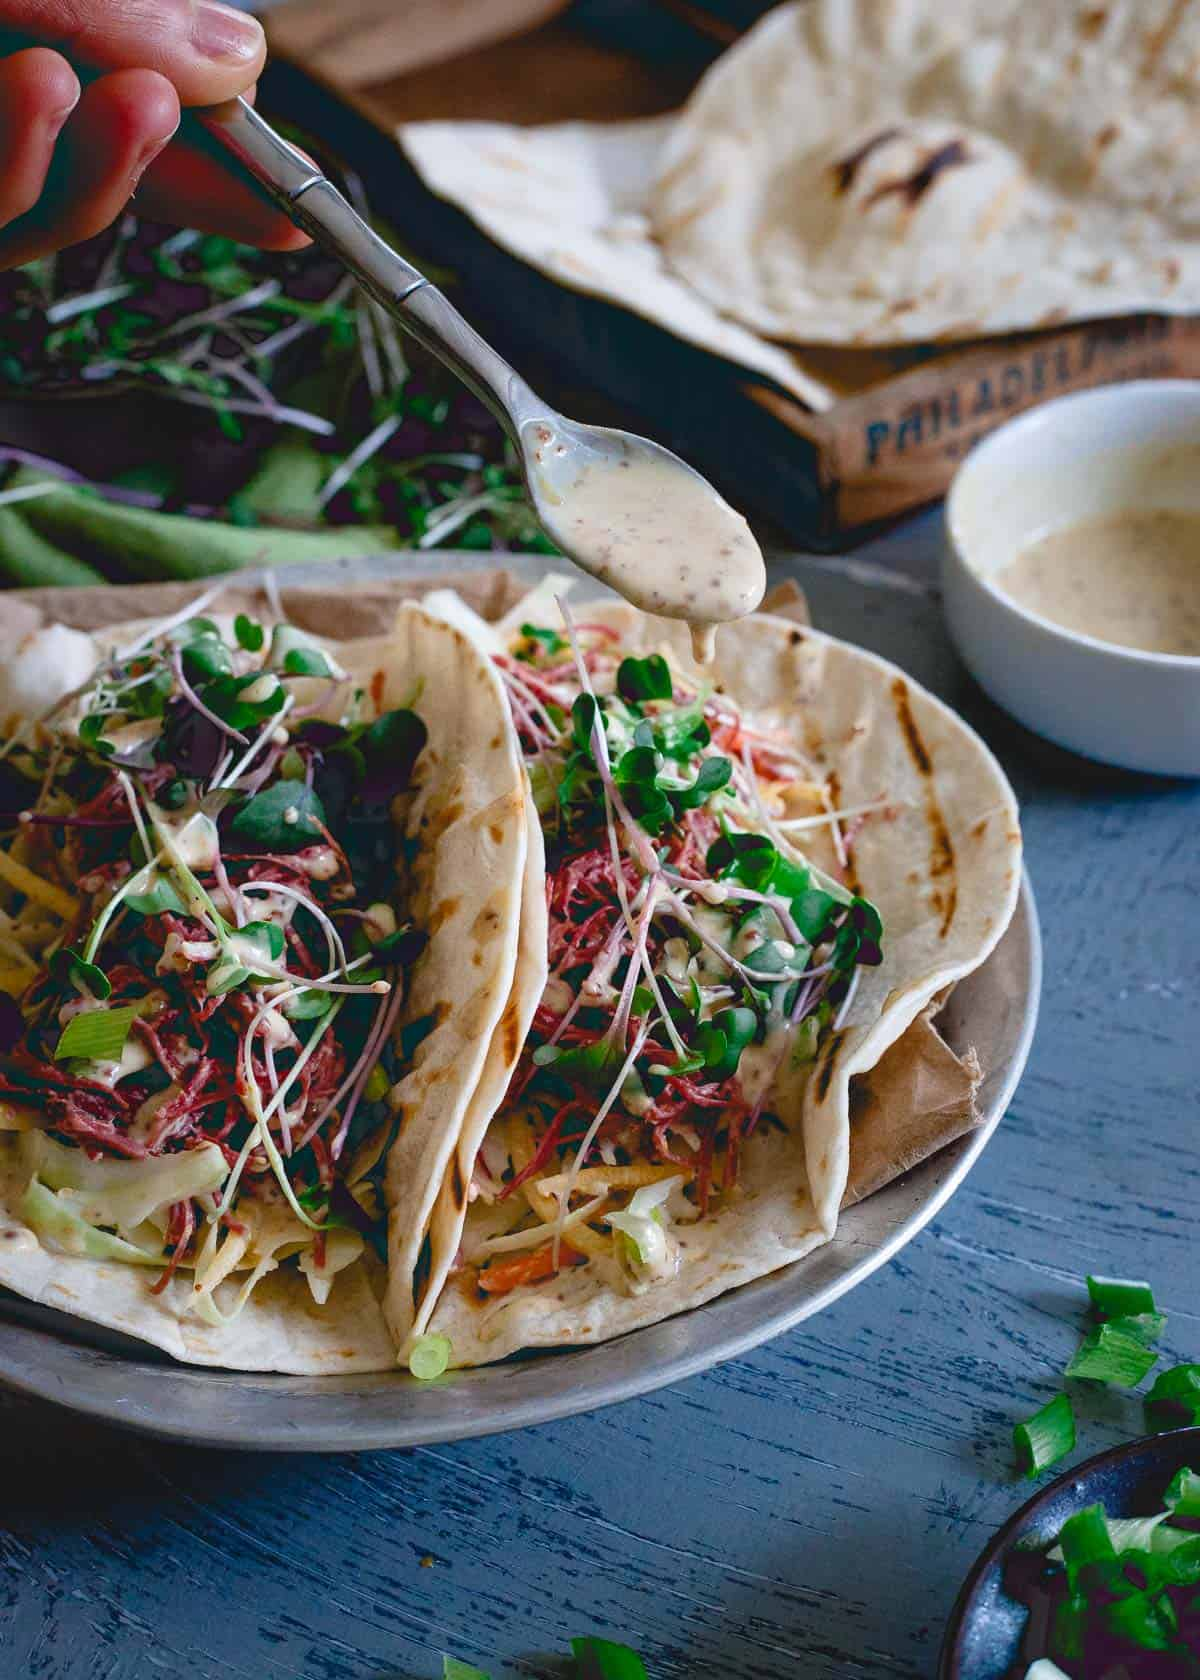 The spicy brown mustard sauce totally makes these corned beef tacos. They even have a horseradish kick to them too!